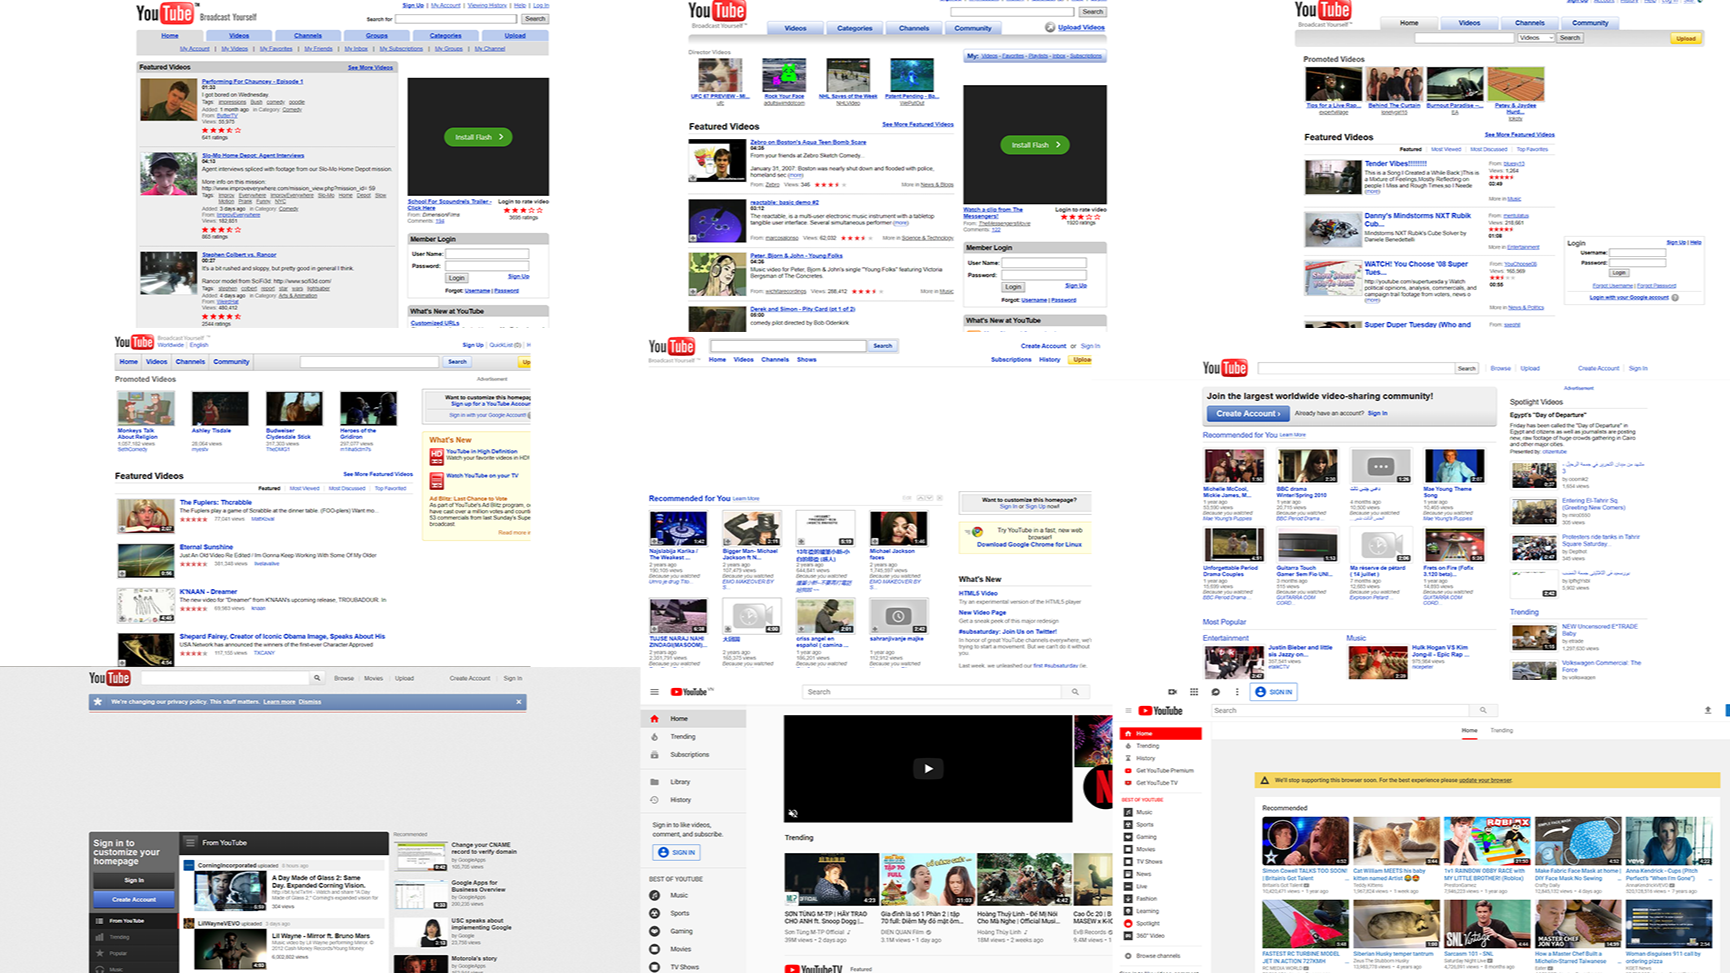 /how-the-youtube-homepage-has-changed-in-the-past-15-years-9cd346o feature image